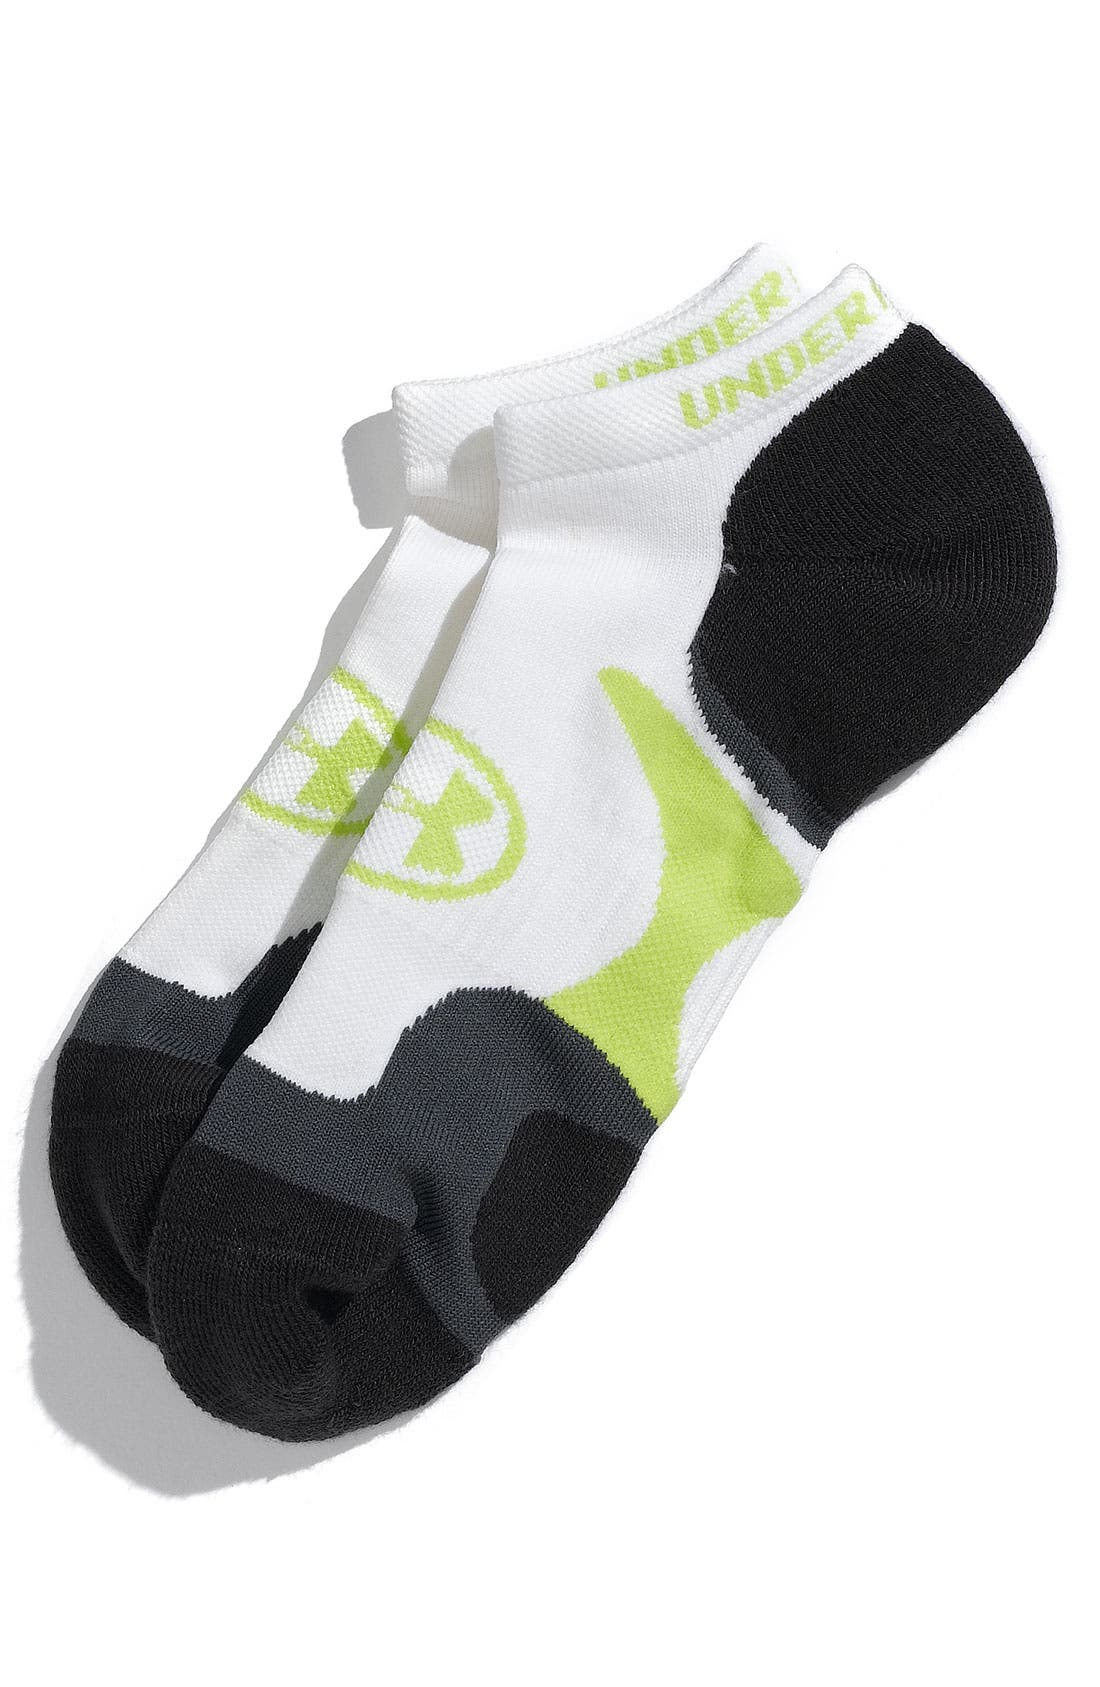 Alternate Image 1 Selected - Under Armour 'Catalyst' Socks